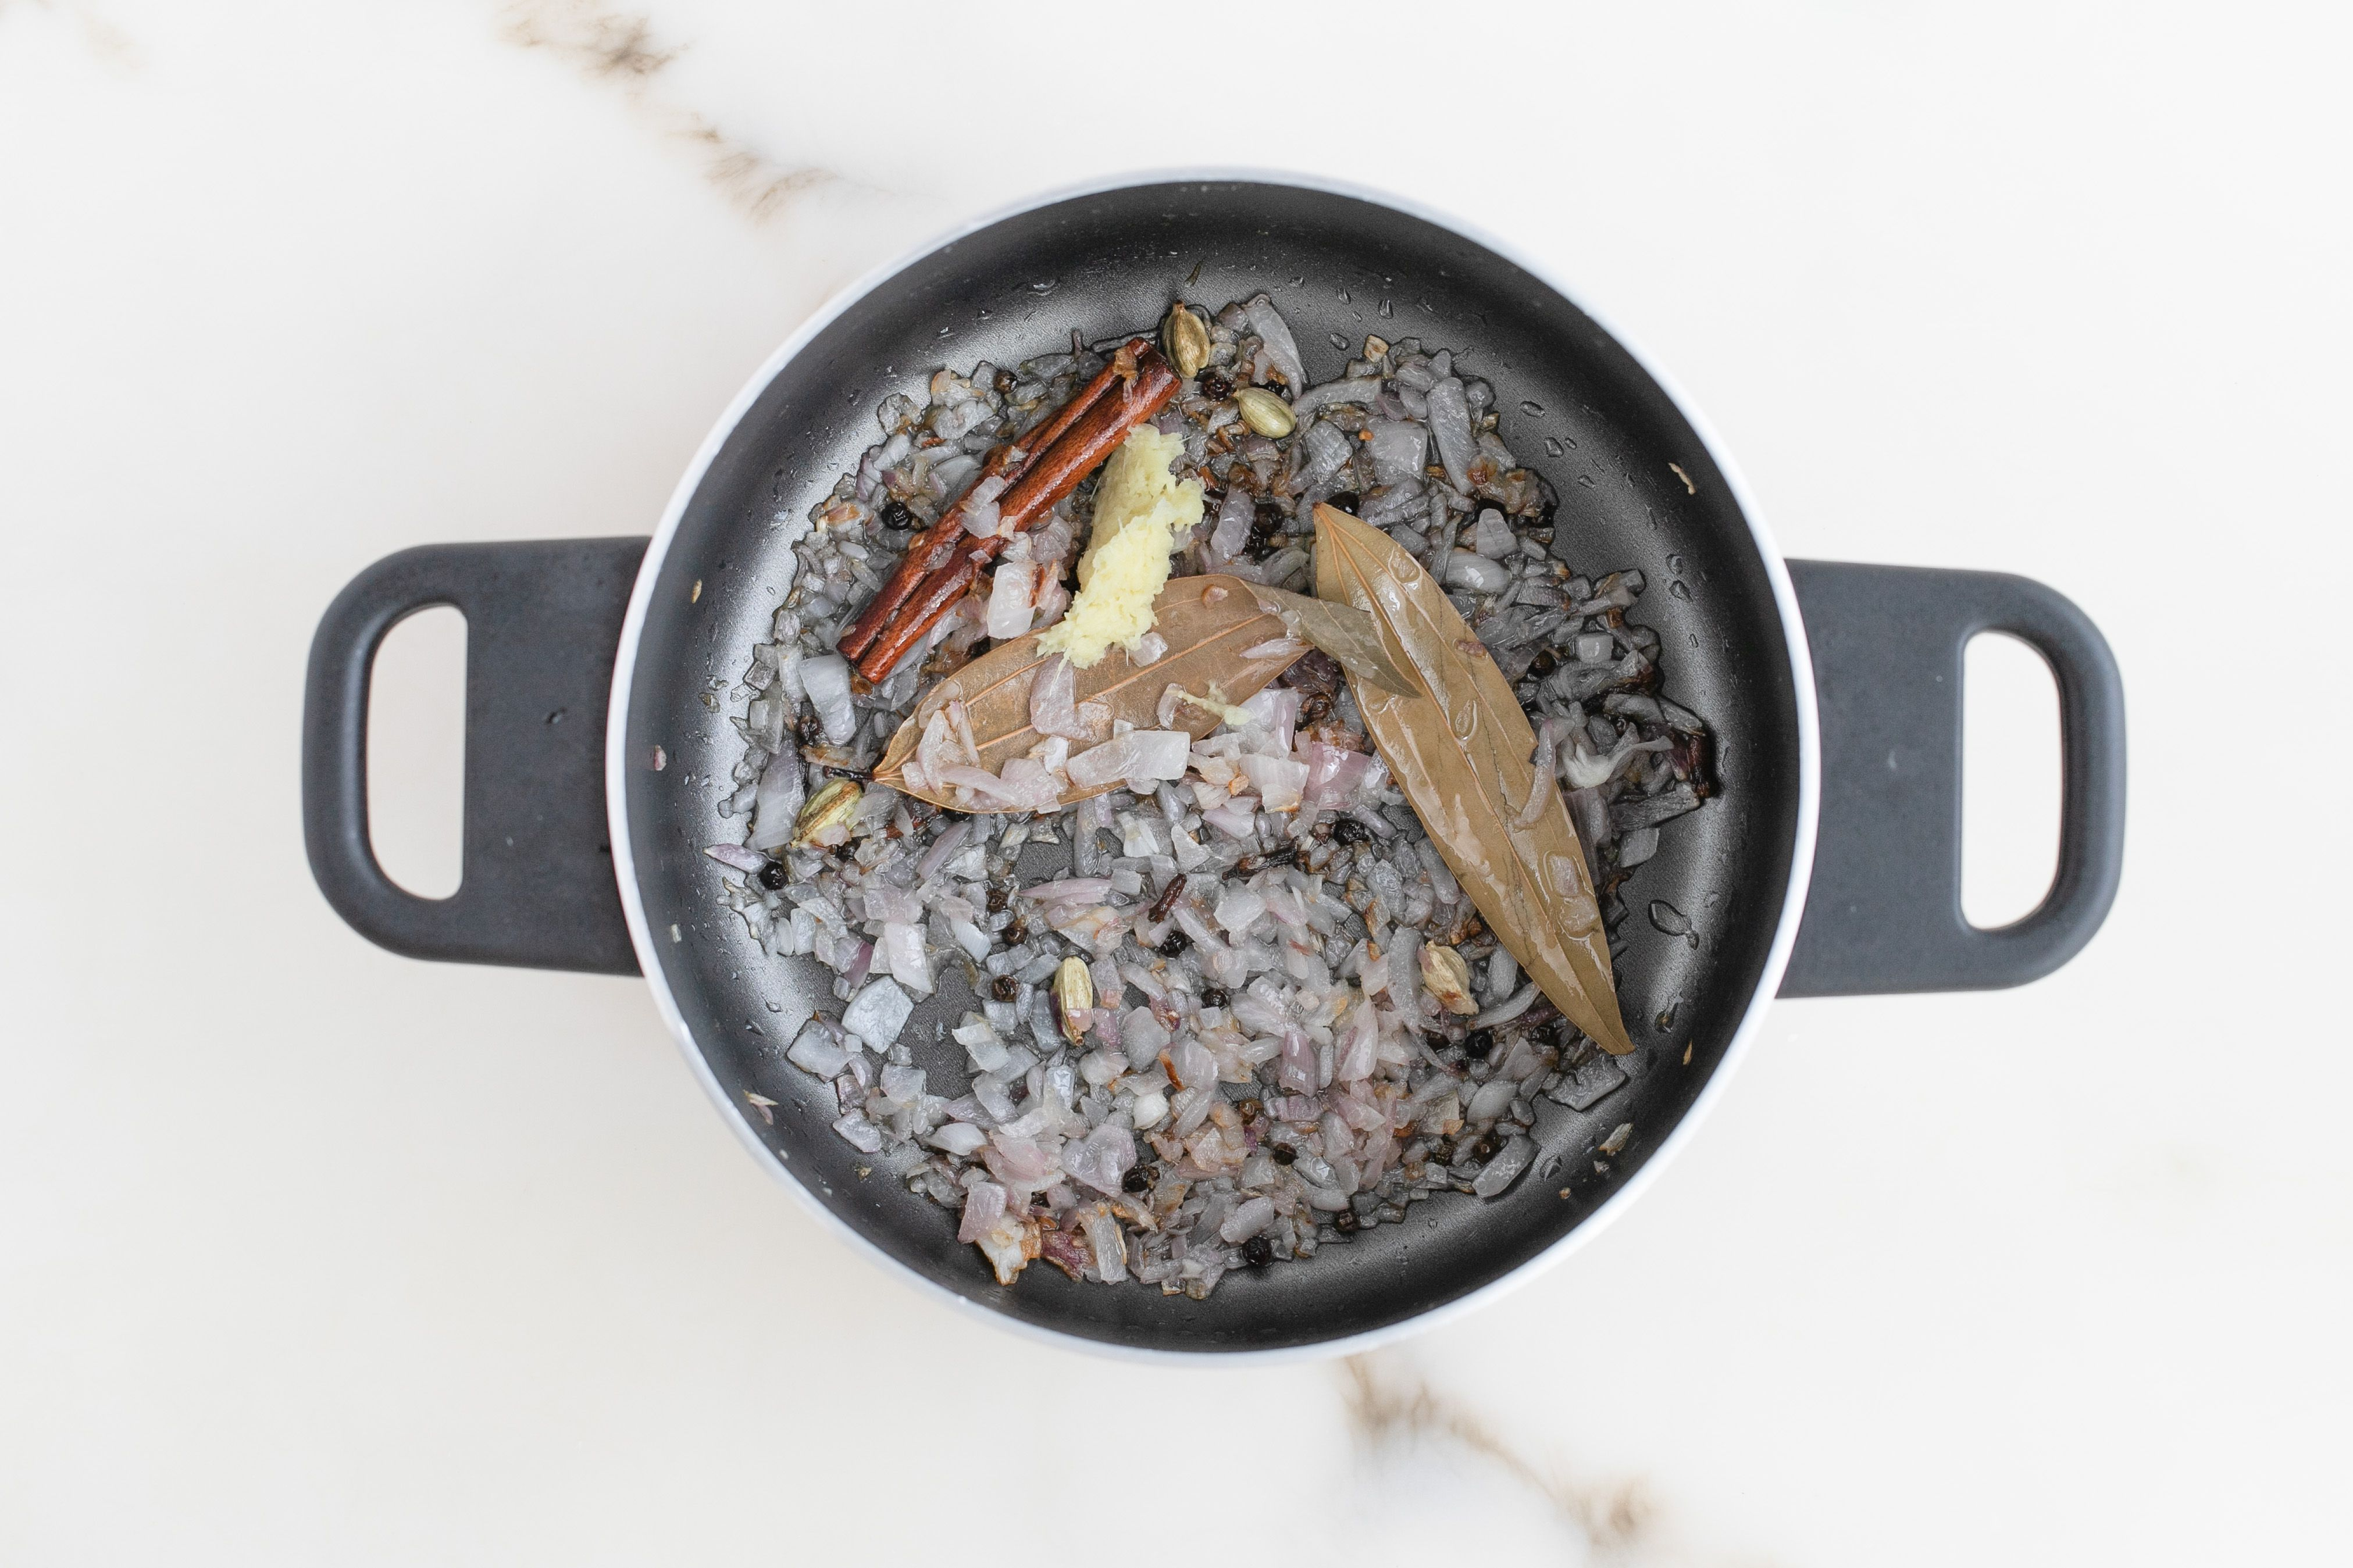 Spices and onions frying in a pot